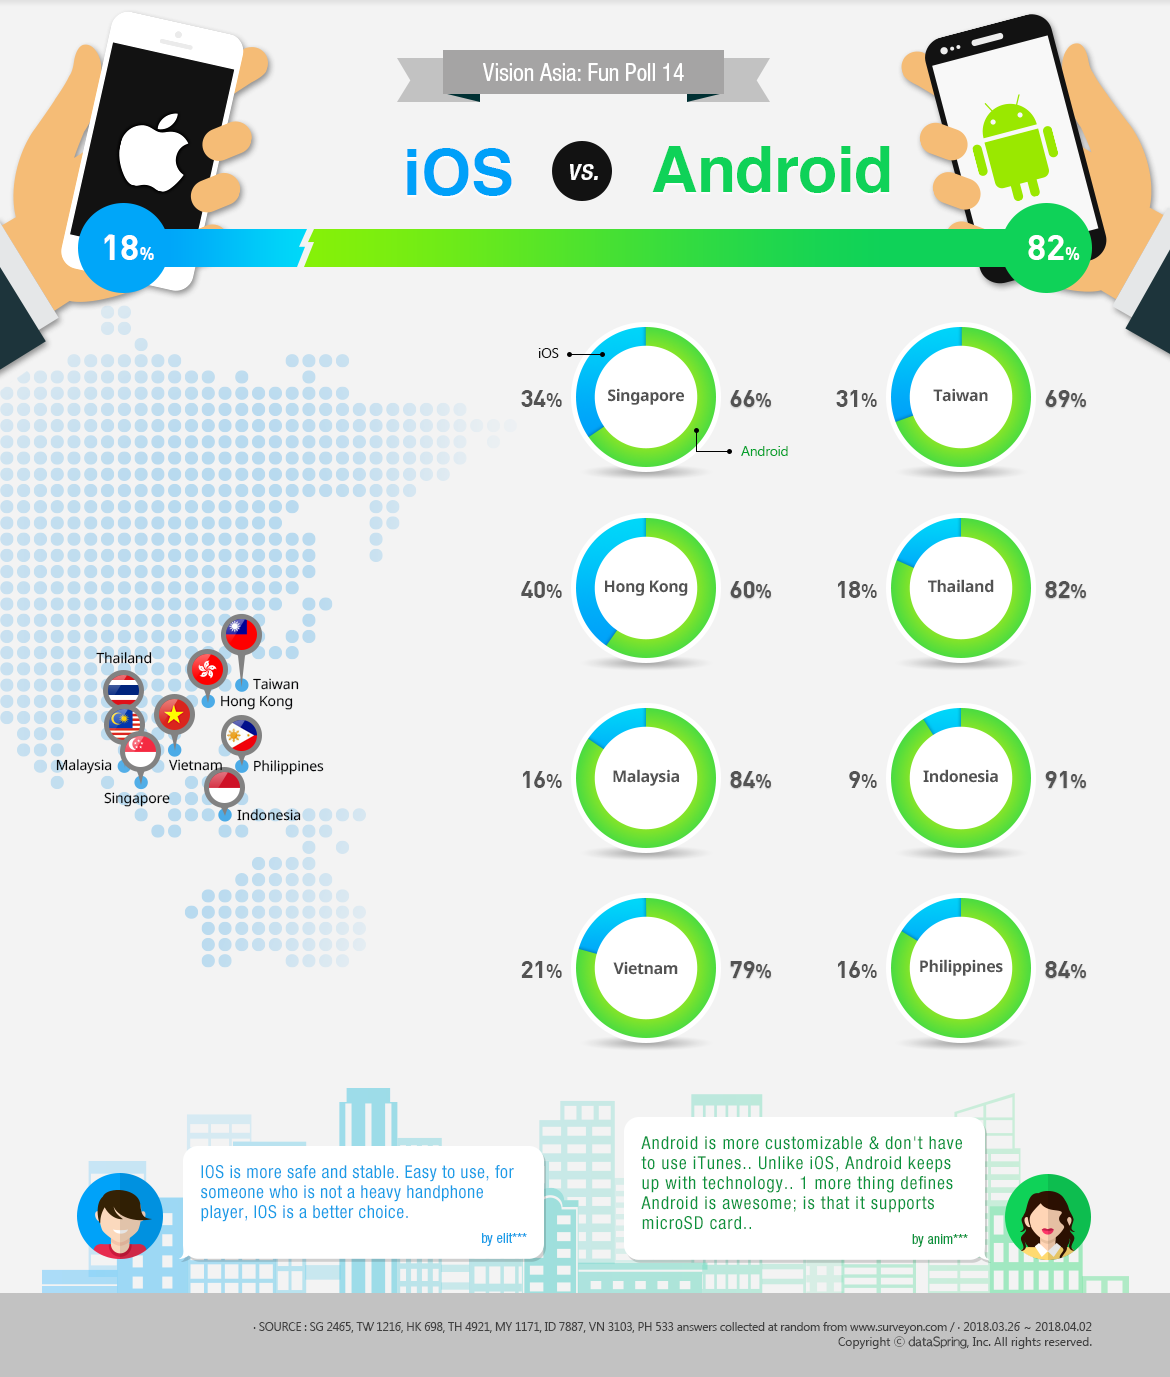 [Infographic] Asia Research Poll: Android vs. iOS